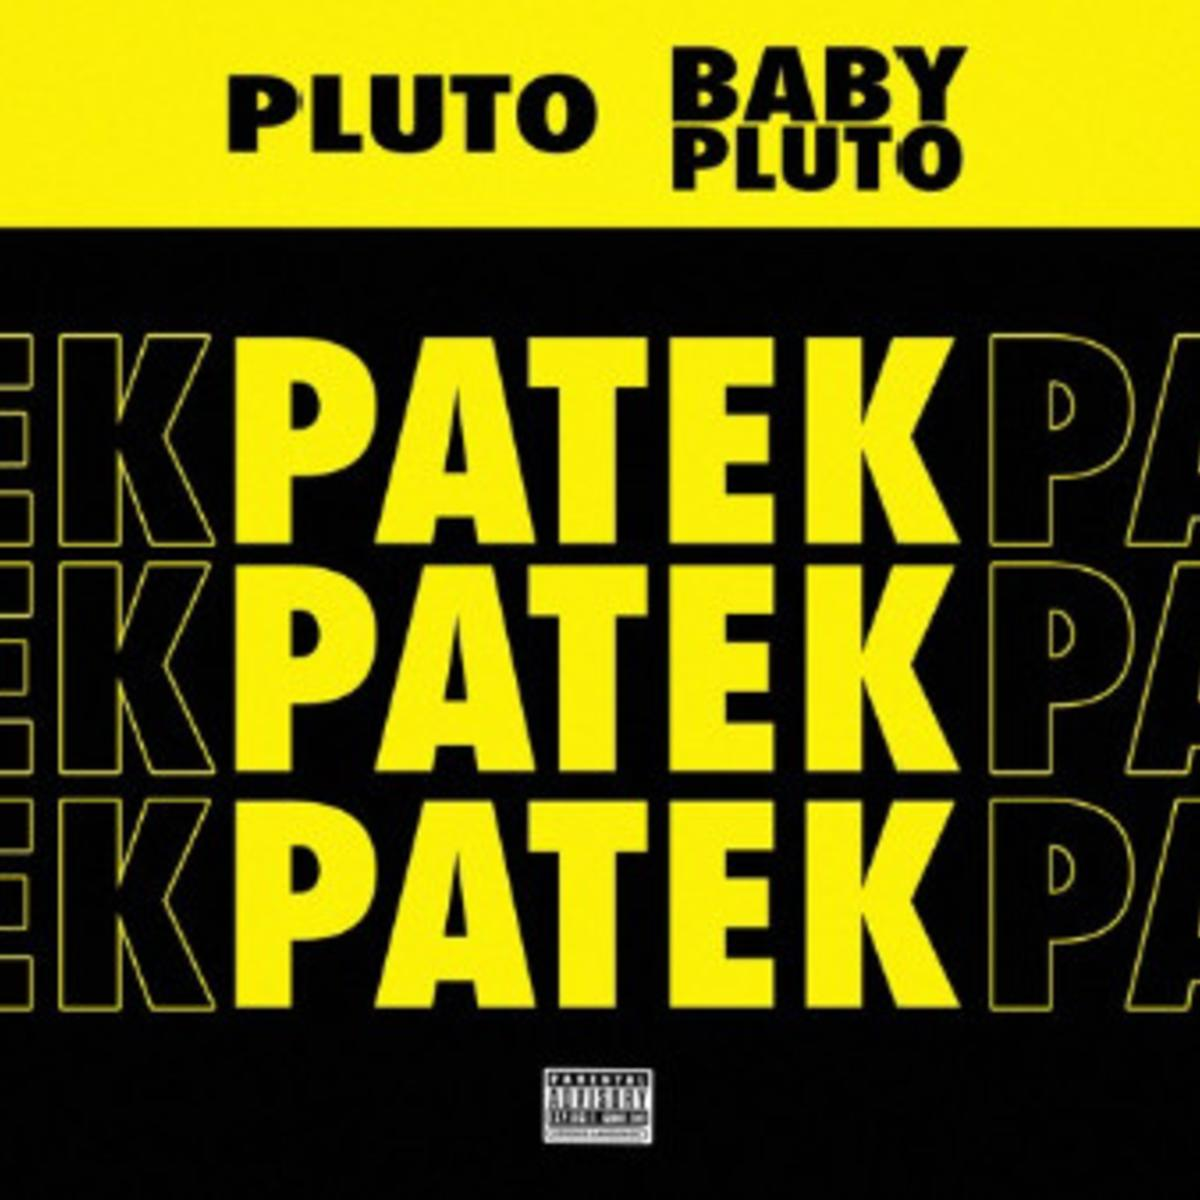 Future and Lil Uzi Vert Tag Team for Singles 'Over Your Head' and 'Patek'